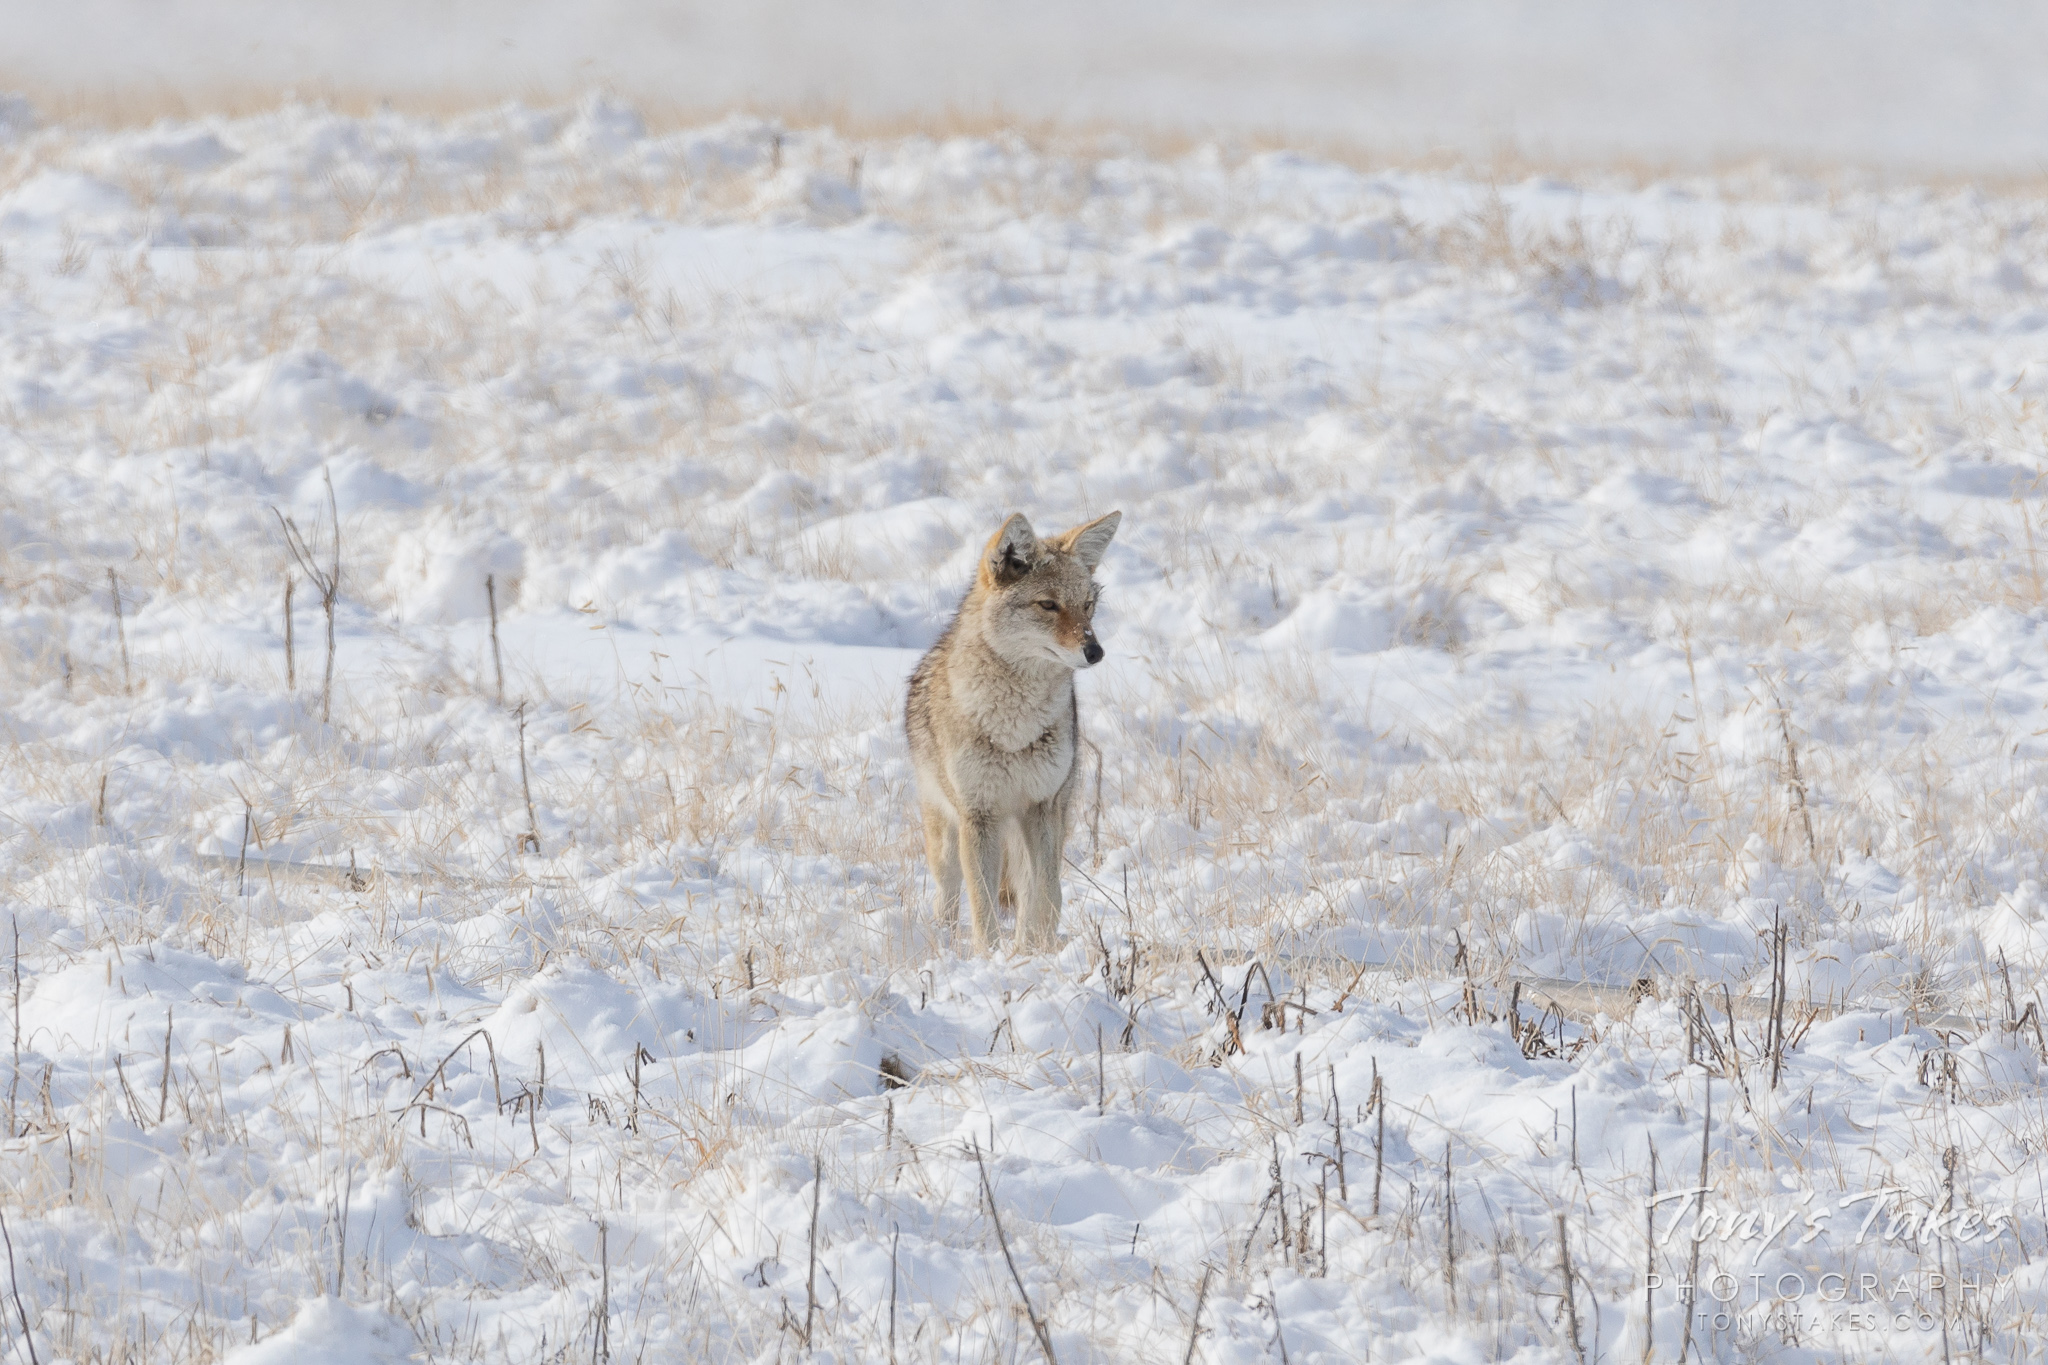 A coyote patrols a snow-covered field in the winter on the Colorado plains. (© Tony's Takes)